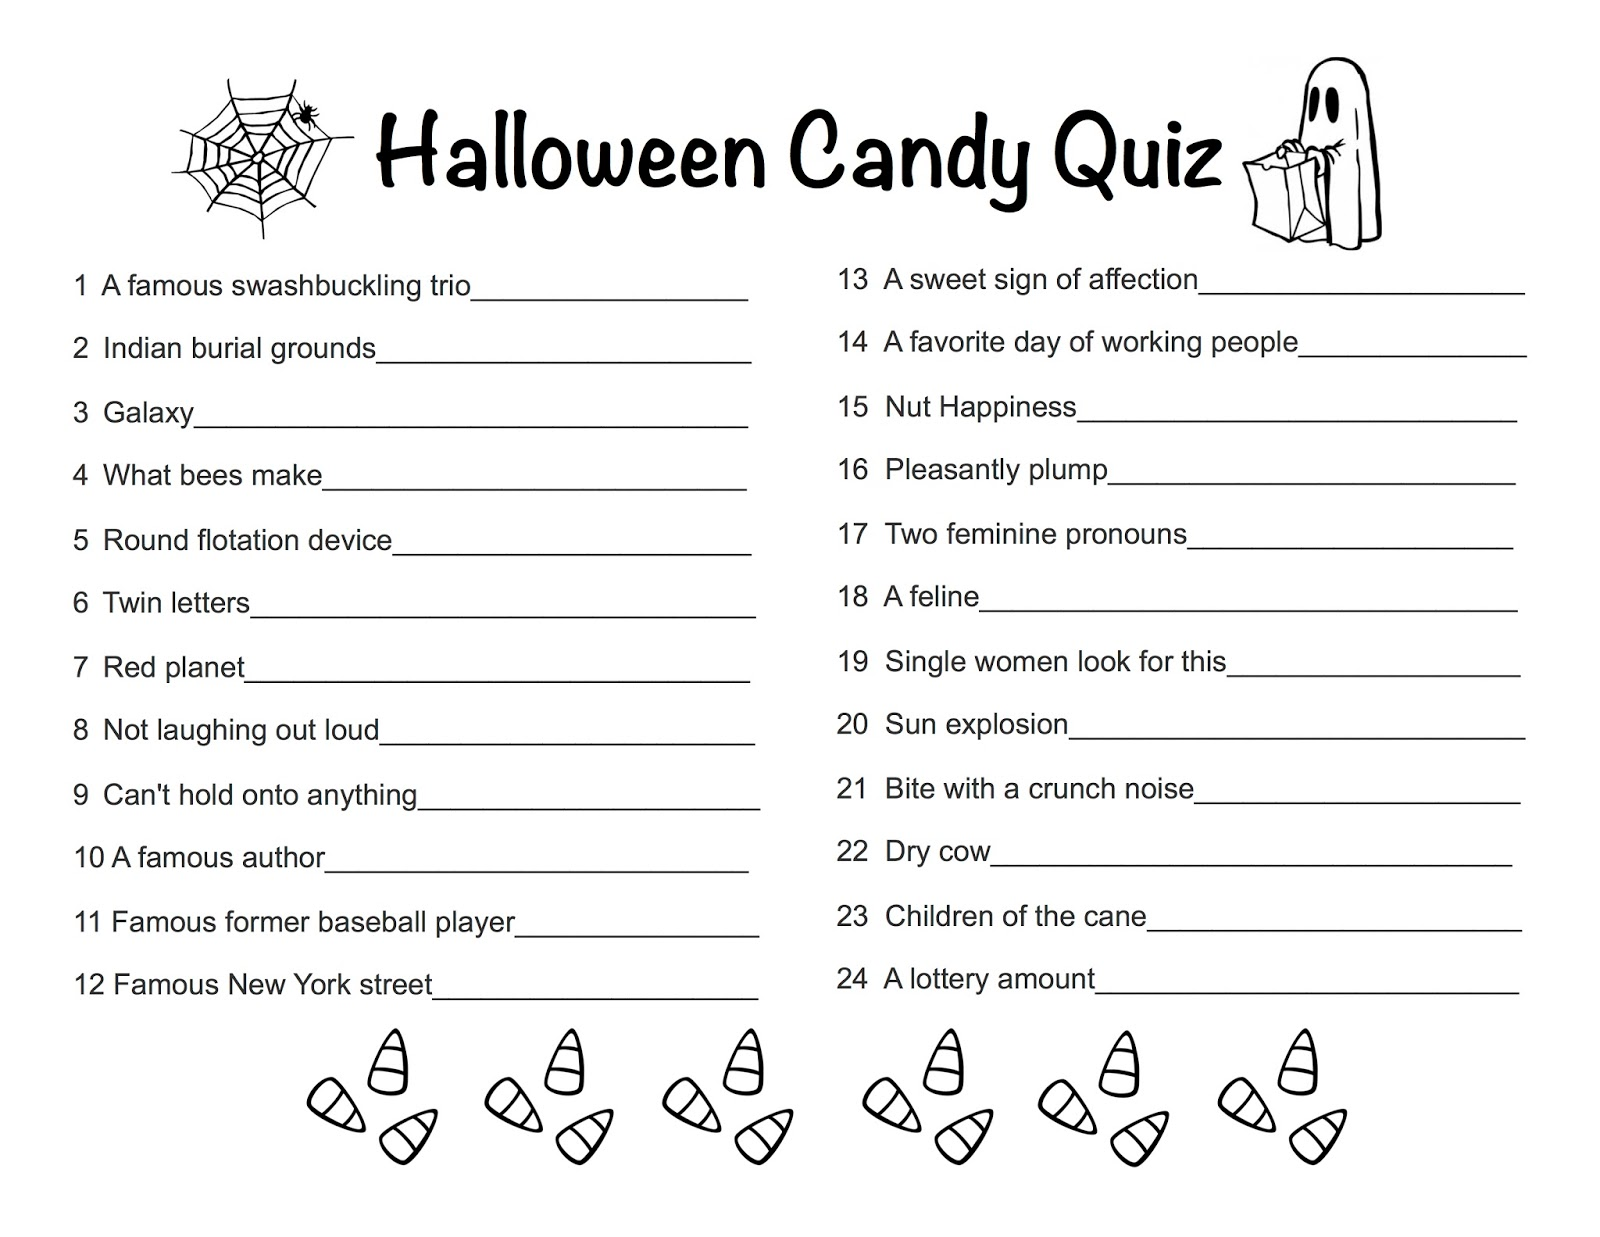 Mag Pad News Halloween Candy Quiz